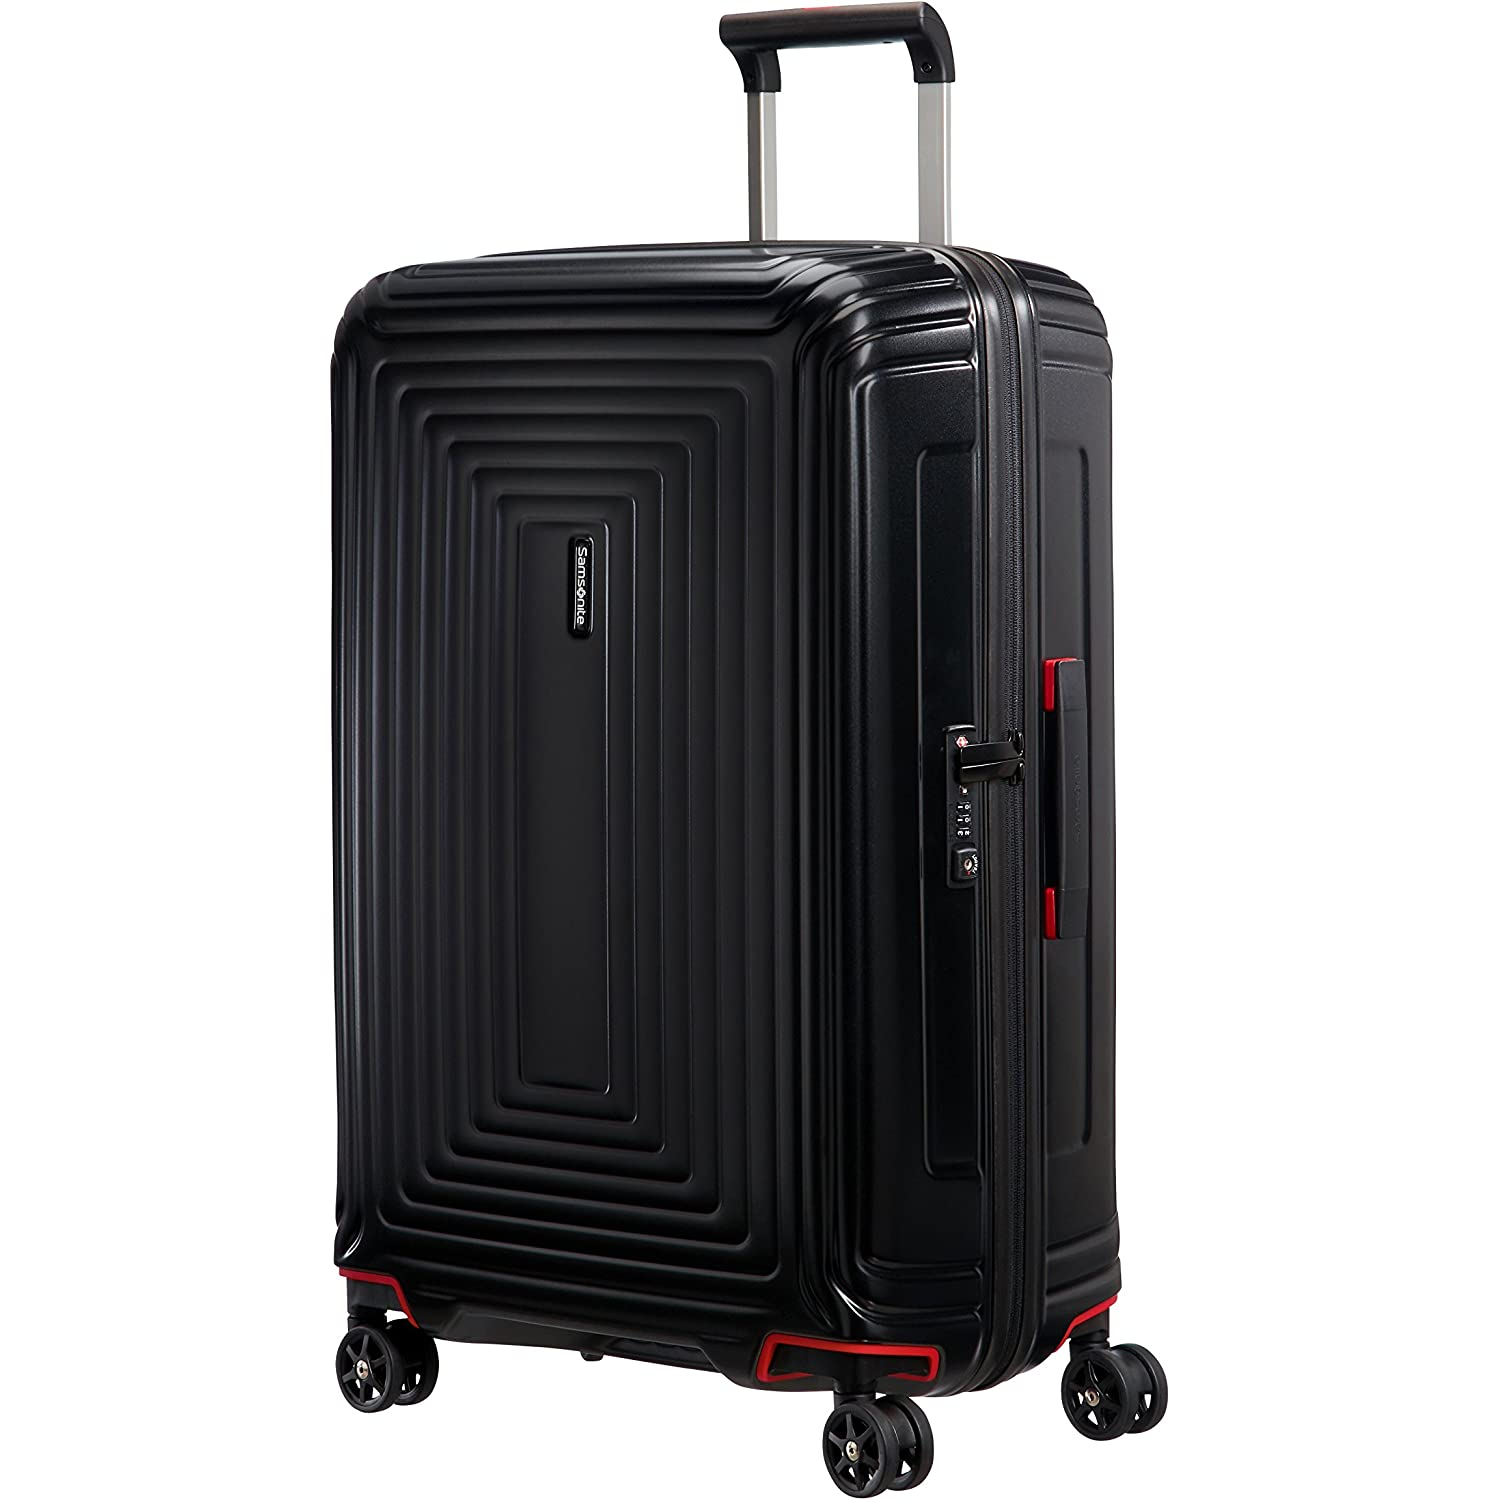 Samsonite Neopulse Spinner